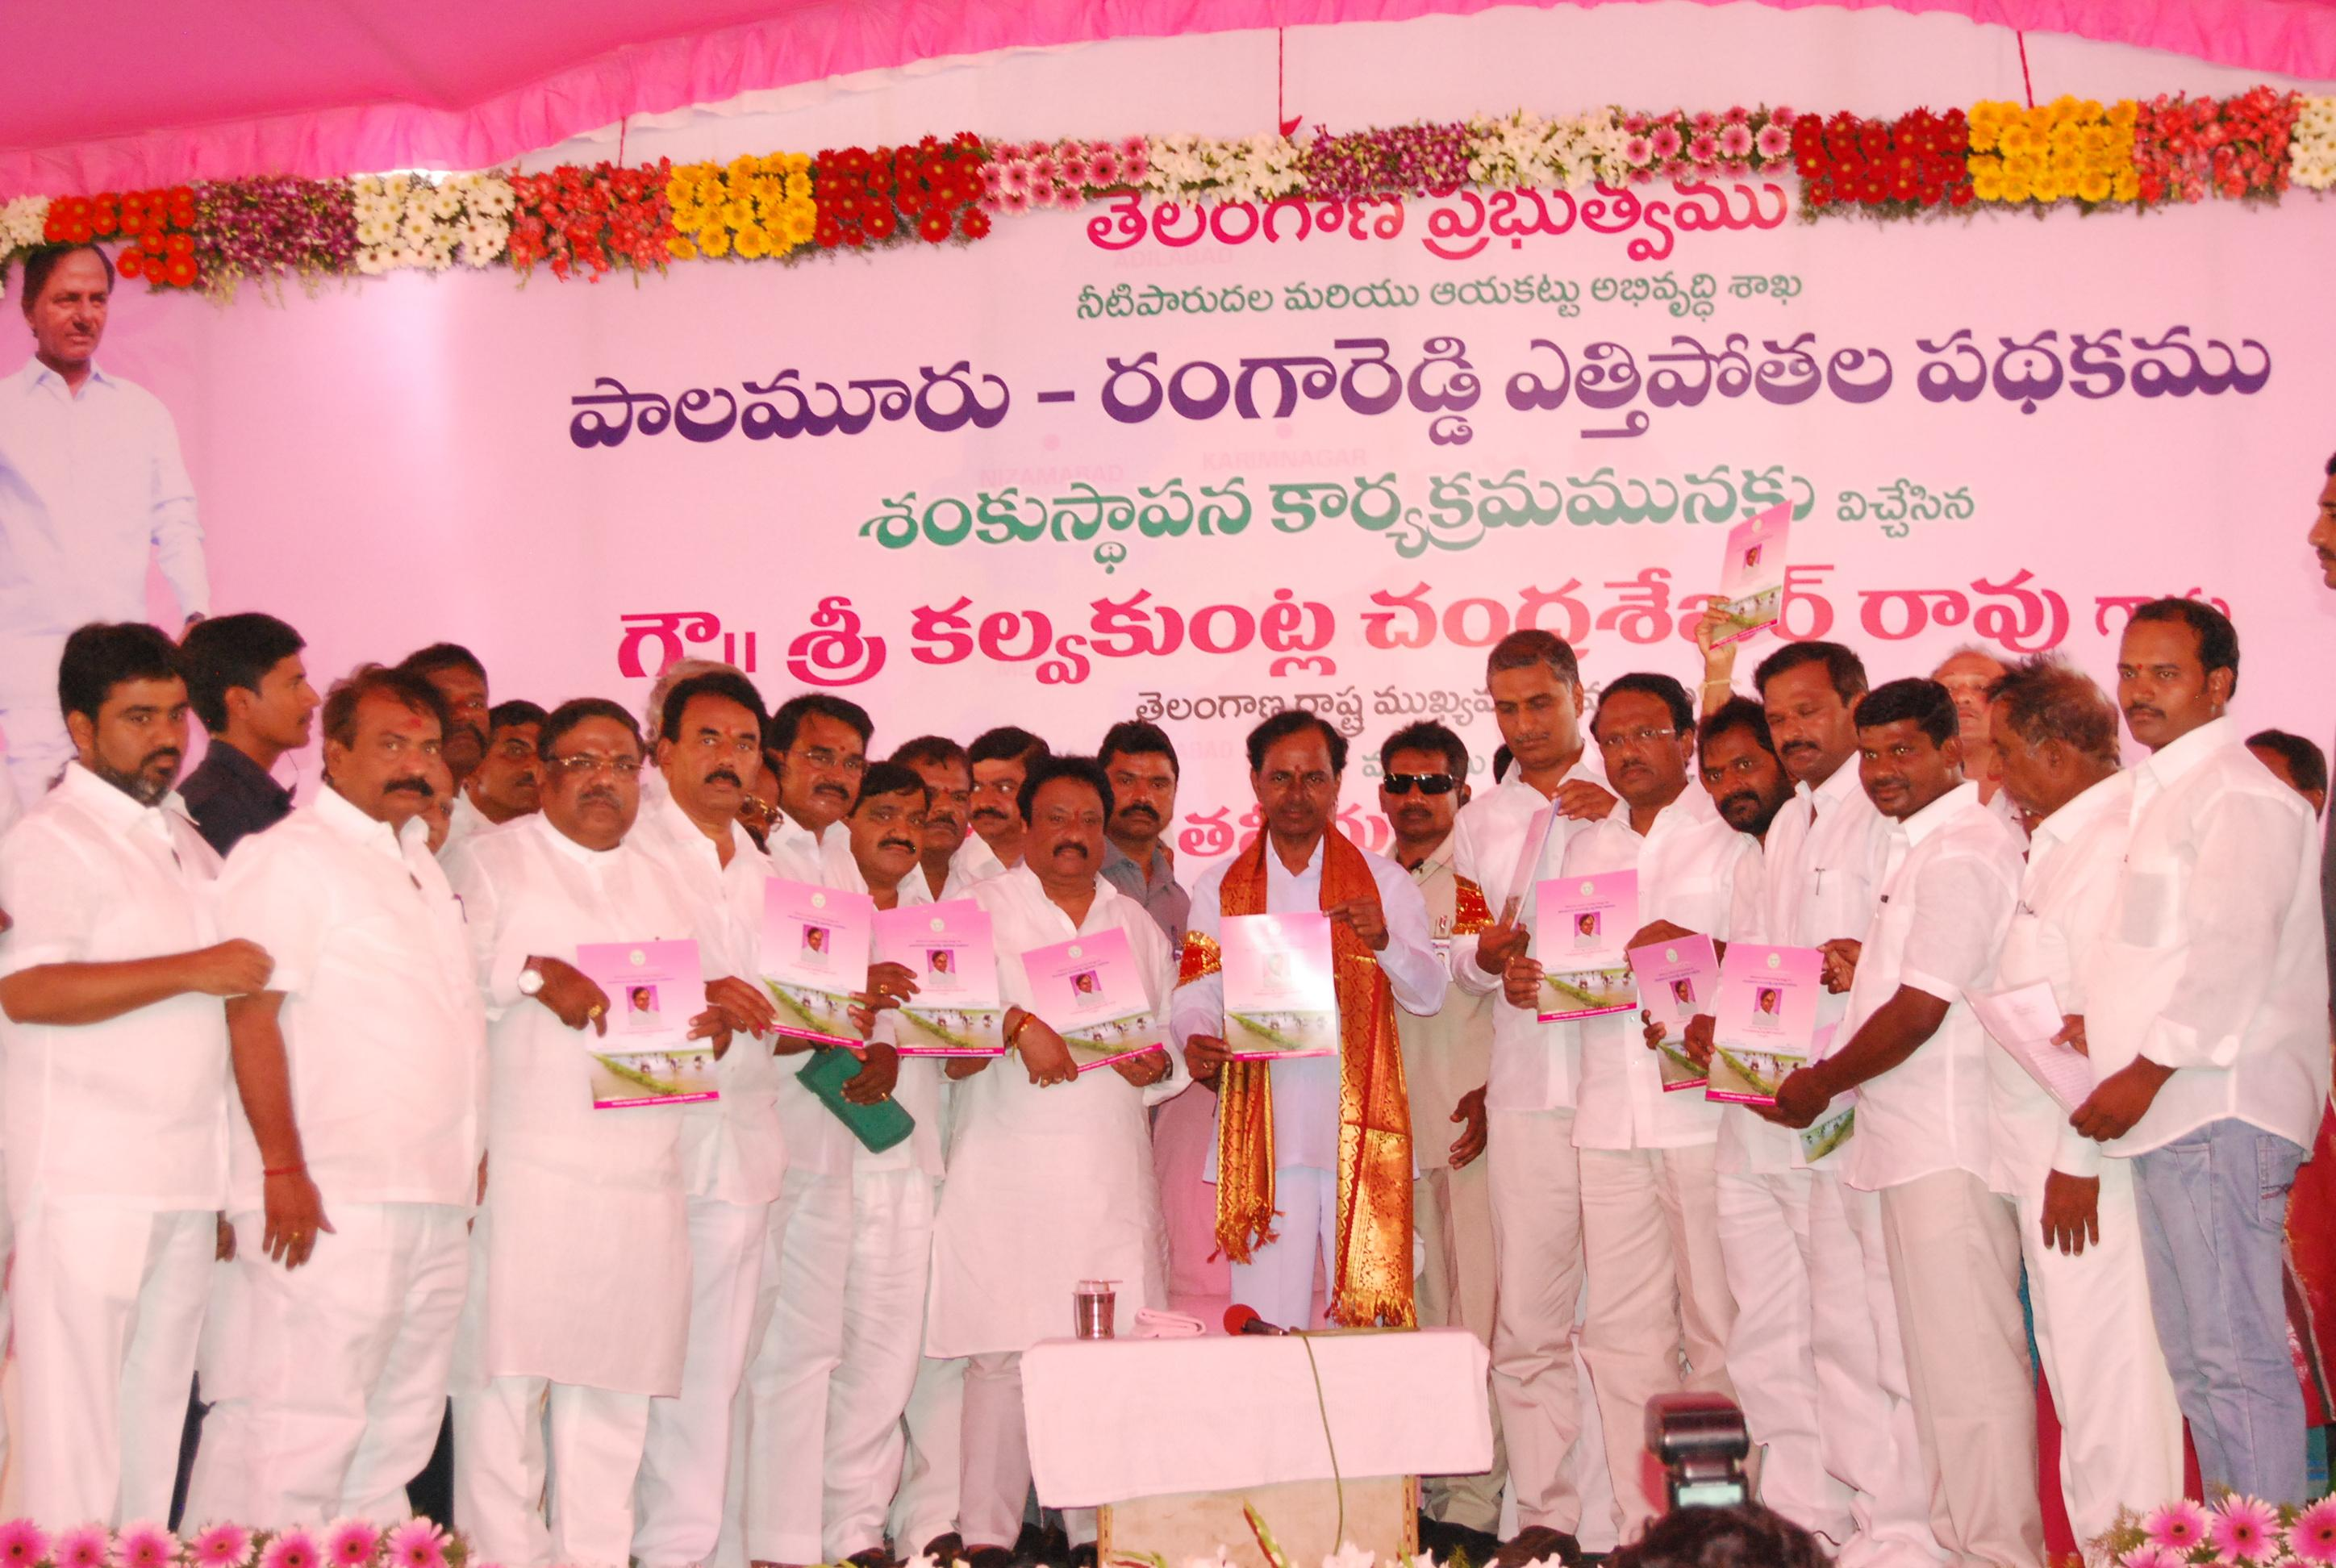 Telangana Chief Minister K.Chandrashekhar Rao Mahabubnagar District visit on 11.6.2015.